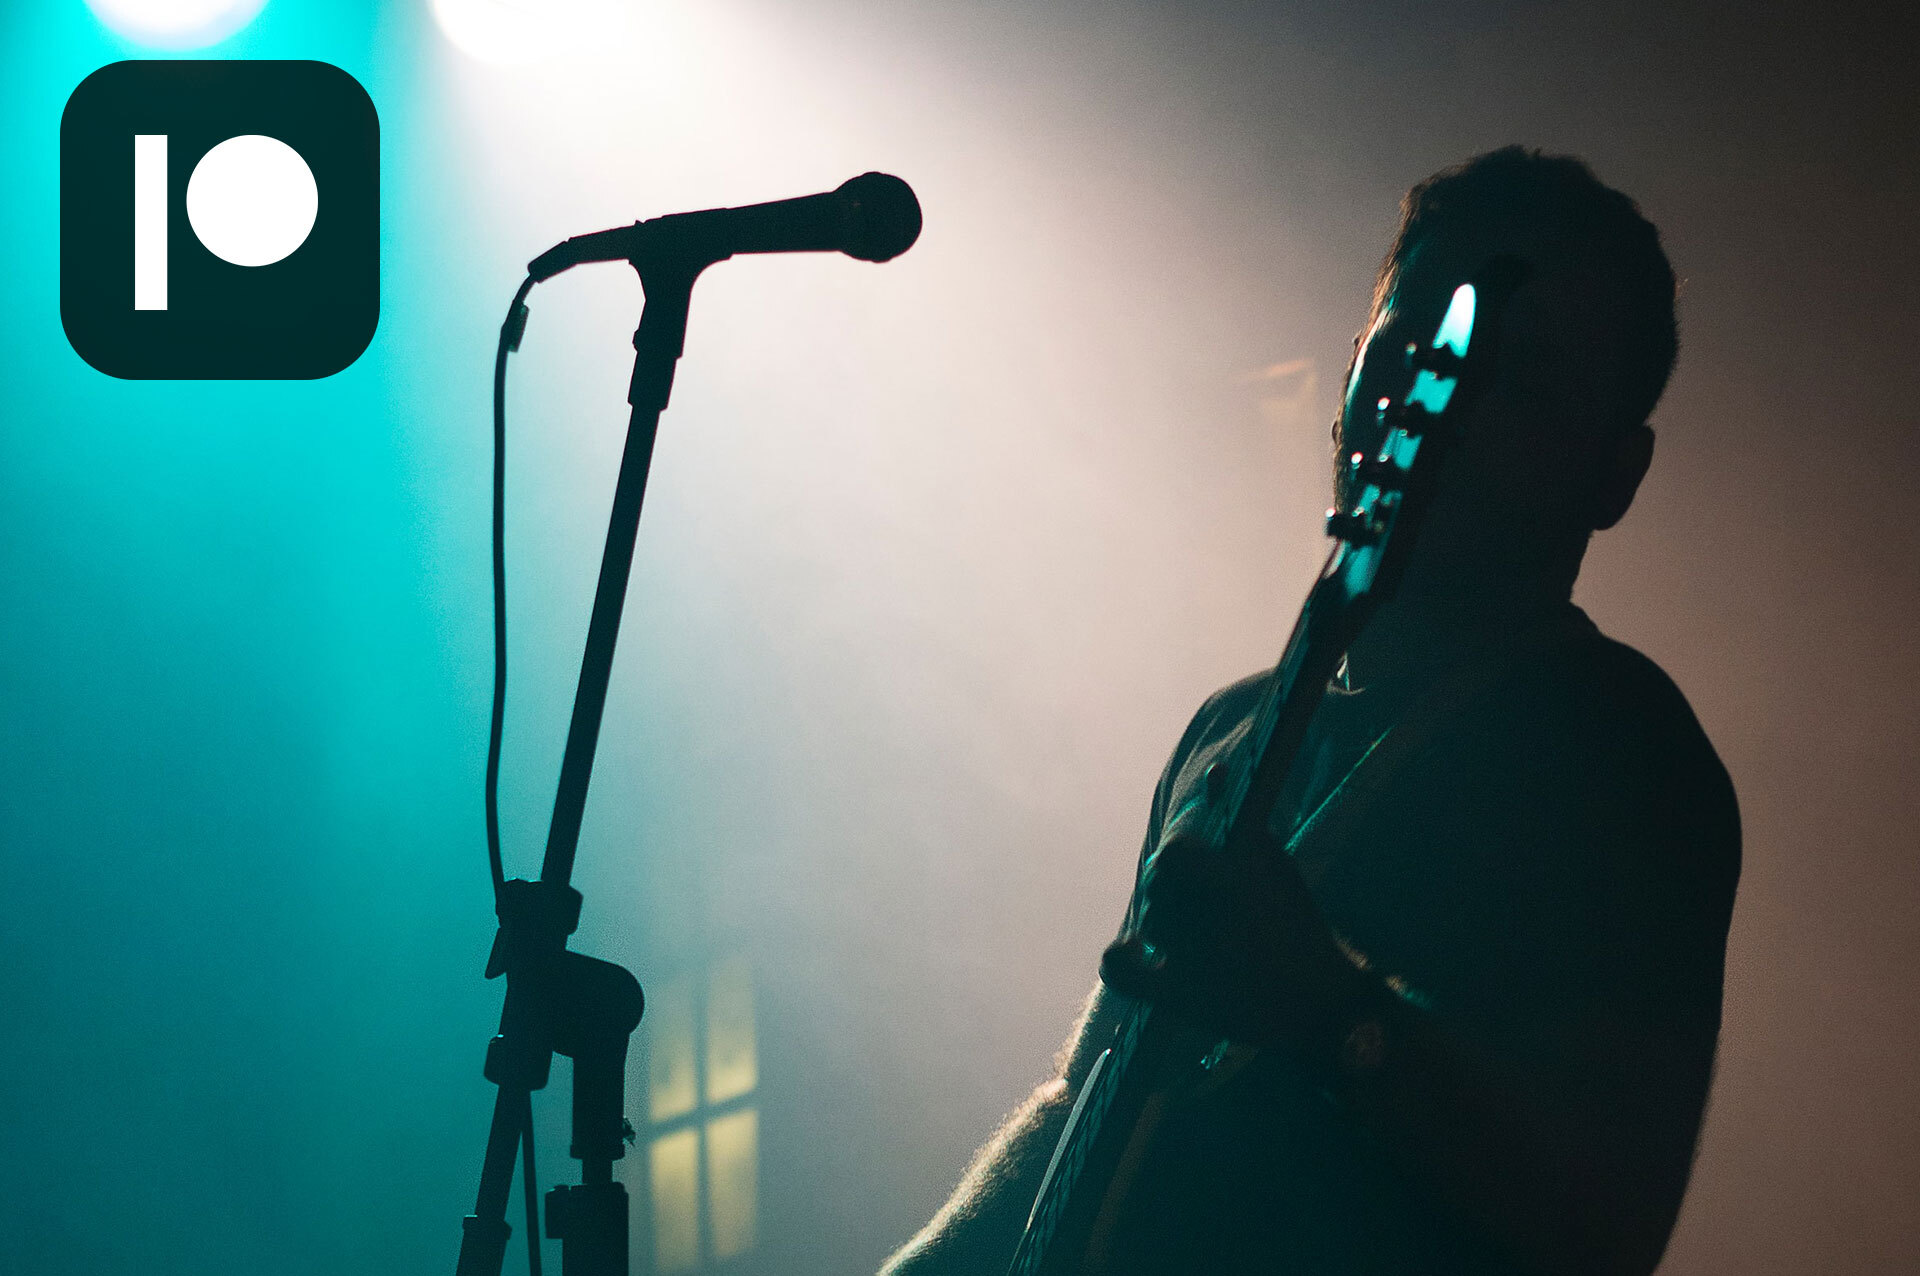 Bass player on stage in the fog. Contribution image for Patreon blogpost